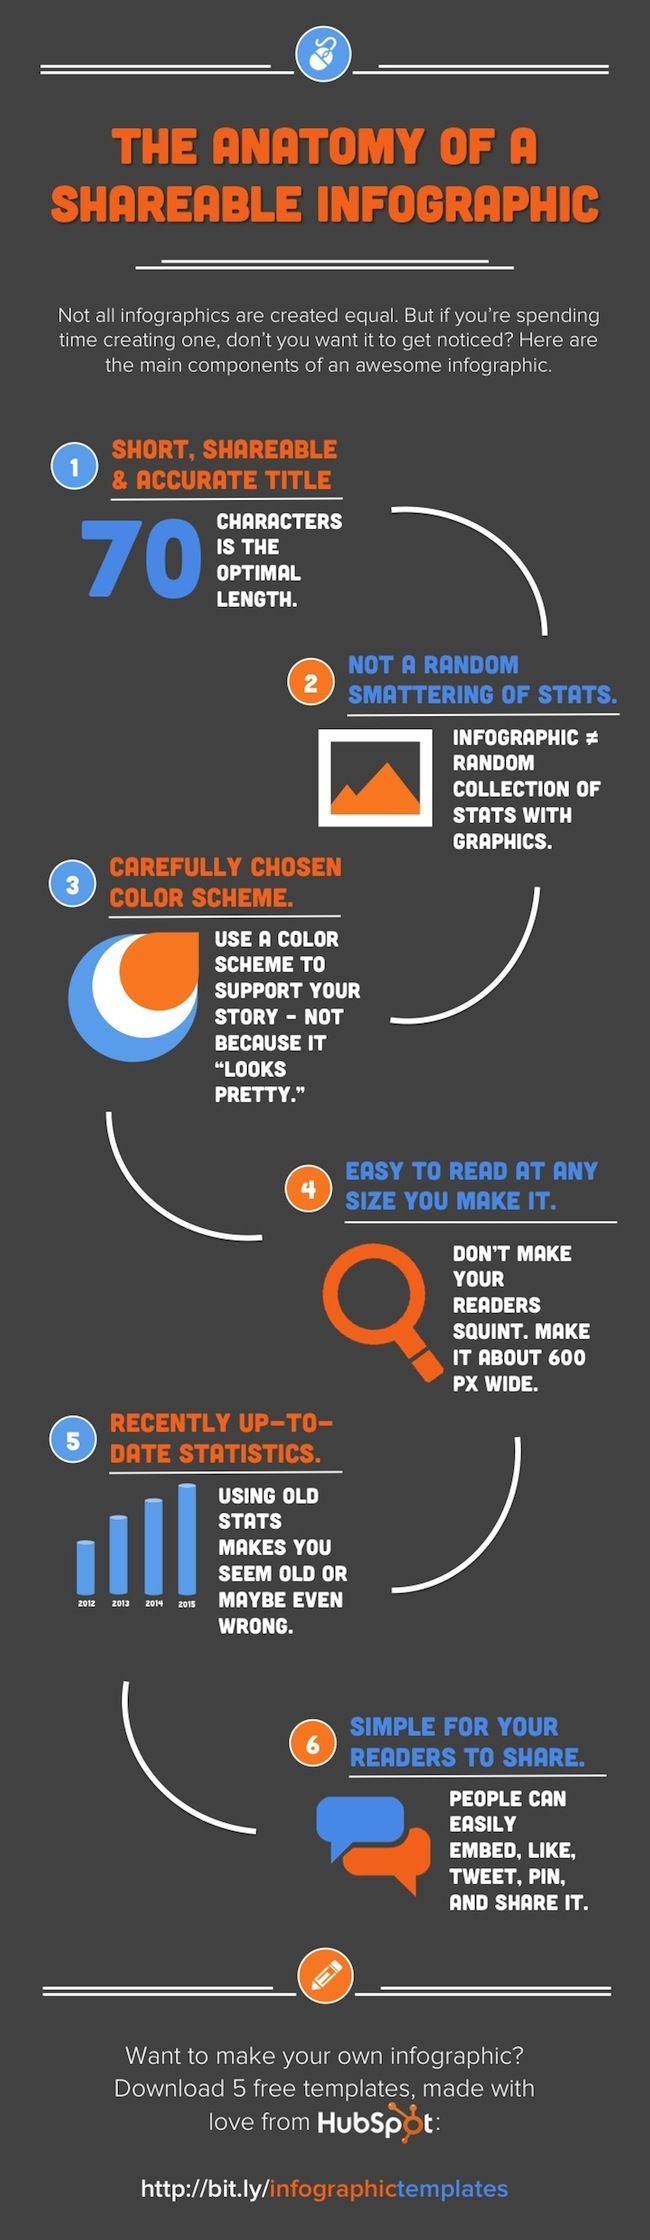 The Anatomy of a Highly Shareable Infographic